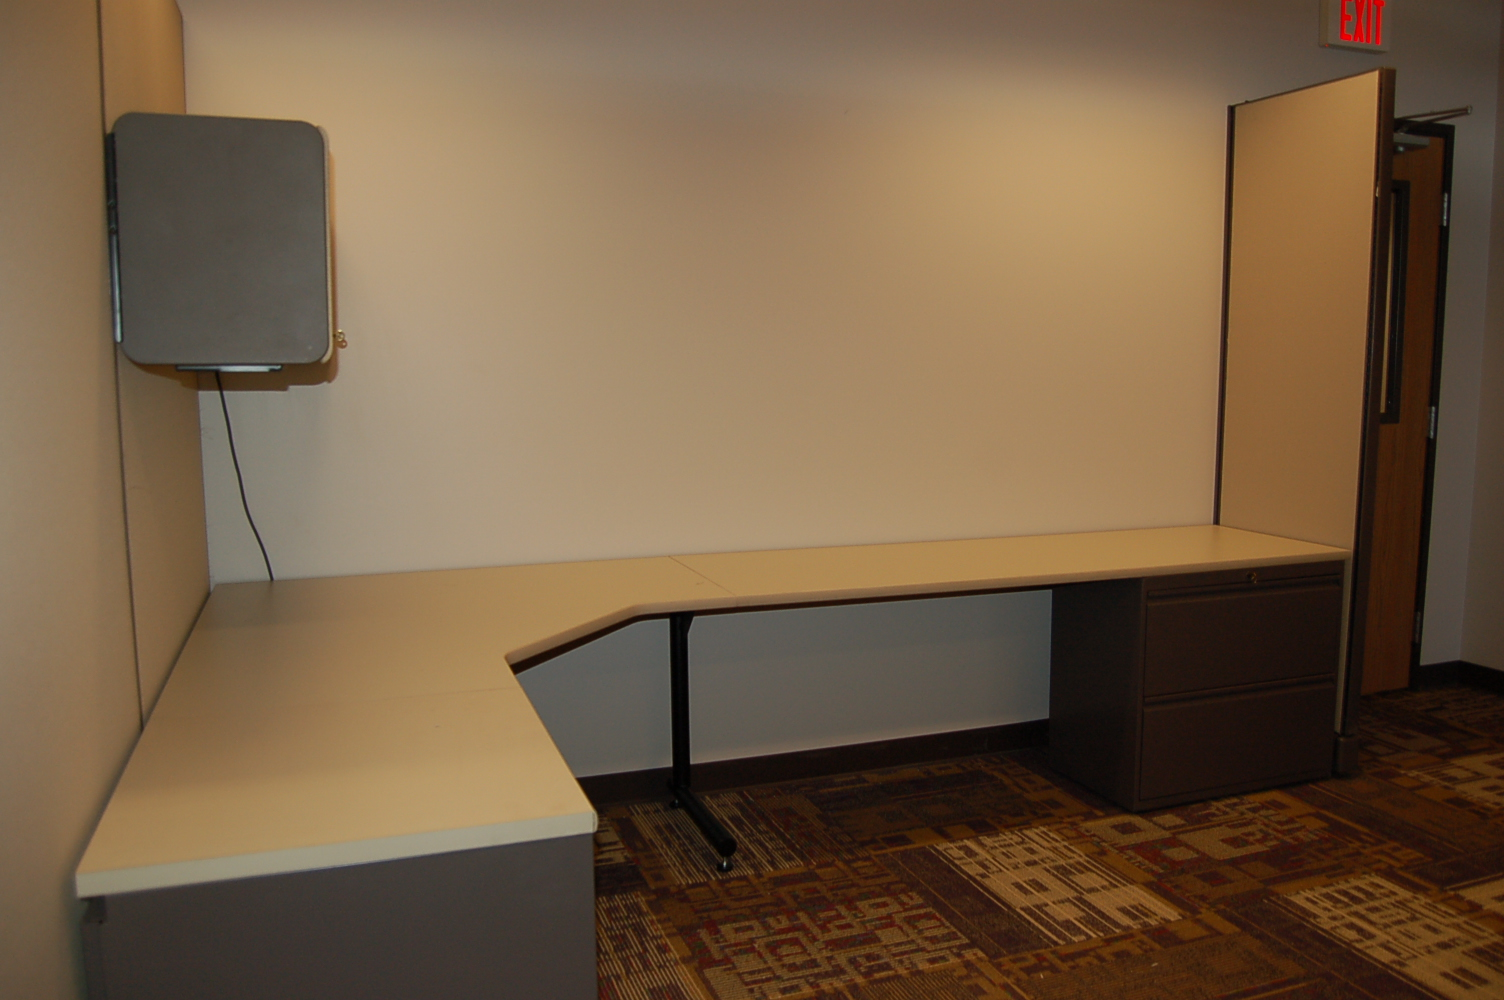 Herman Miller AO2 Tall Wall Workstations